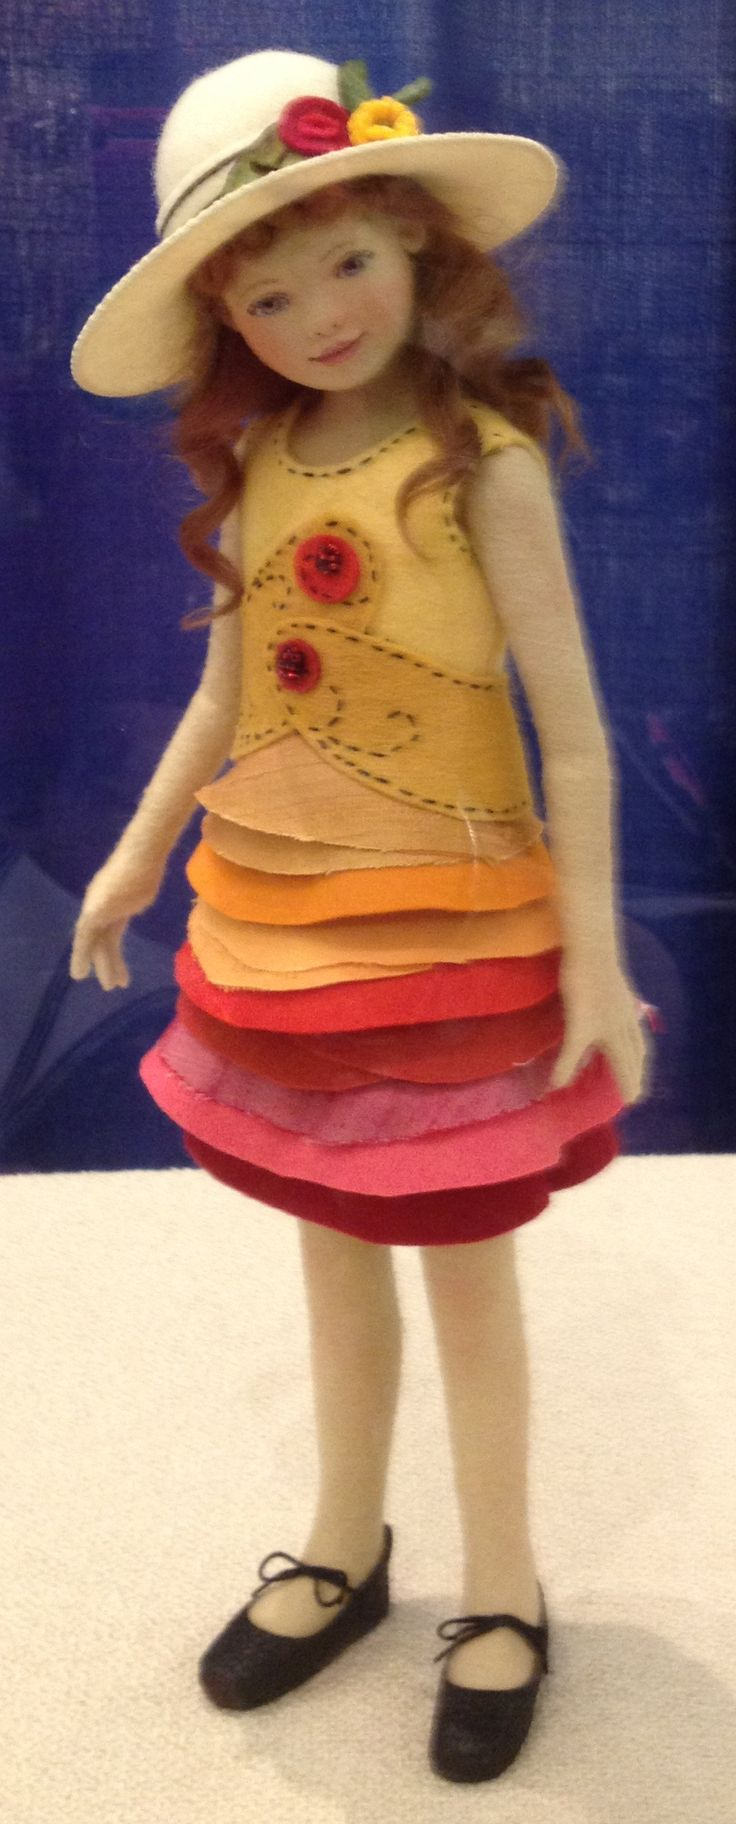 *FELT ART ~ Maggie Iacono Collectible Dolls+ check out this site for a variety of dolls and fun felt clothes